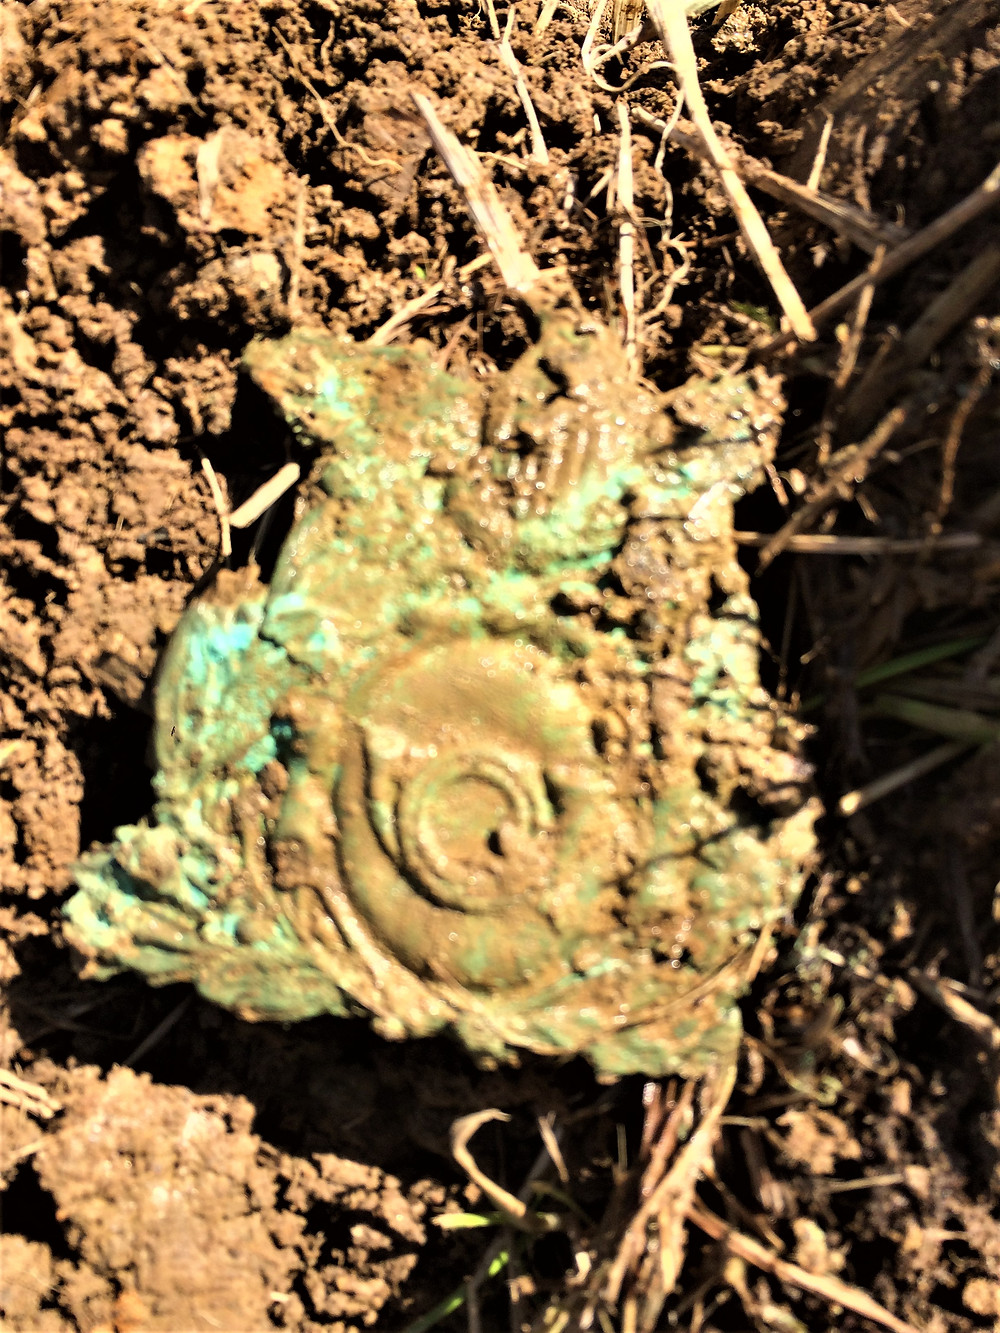 The Chasseur hat plate fresh out of the mud--sorry for the blurriness of the photo, as you can imagine my hands were shaking!